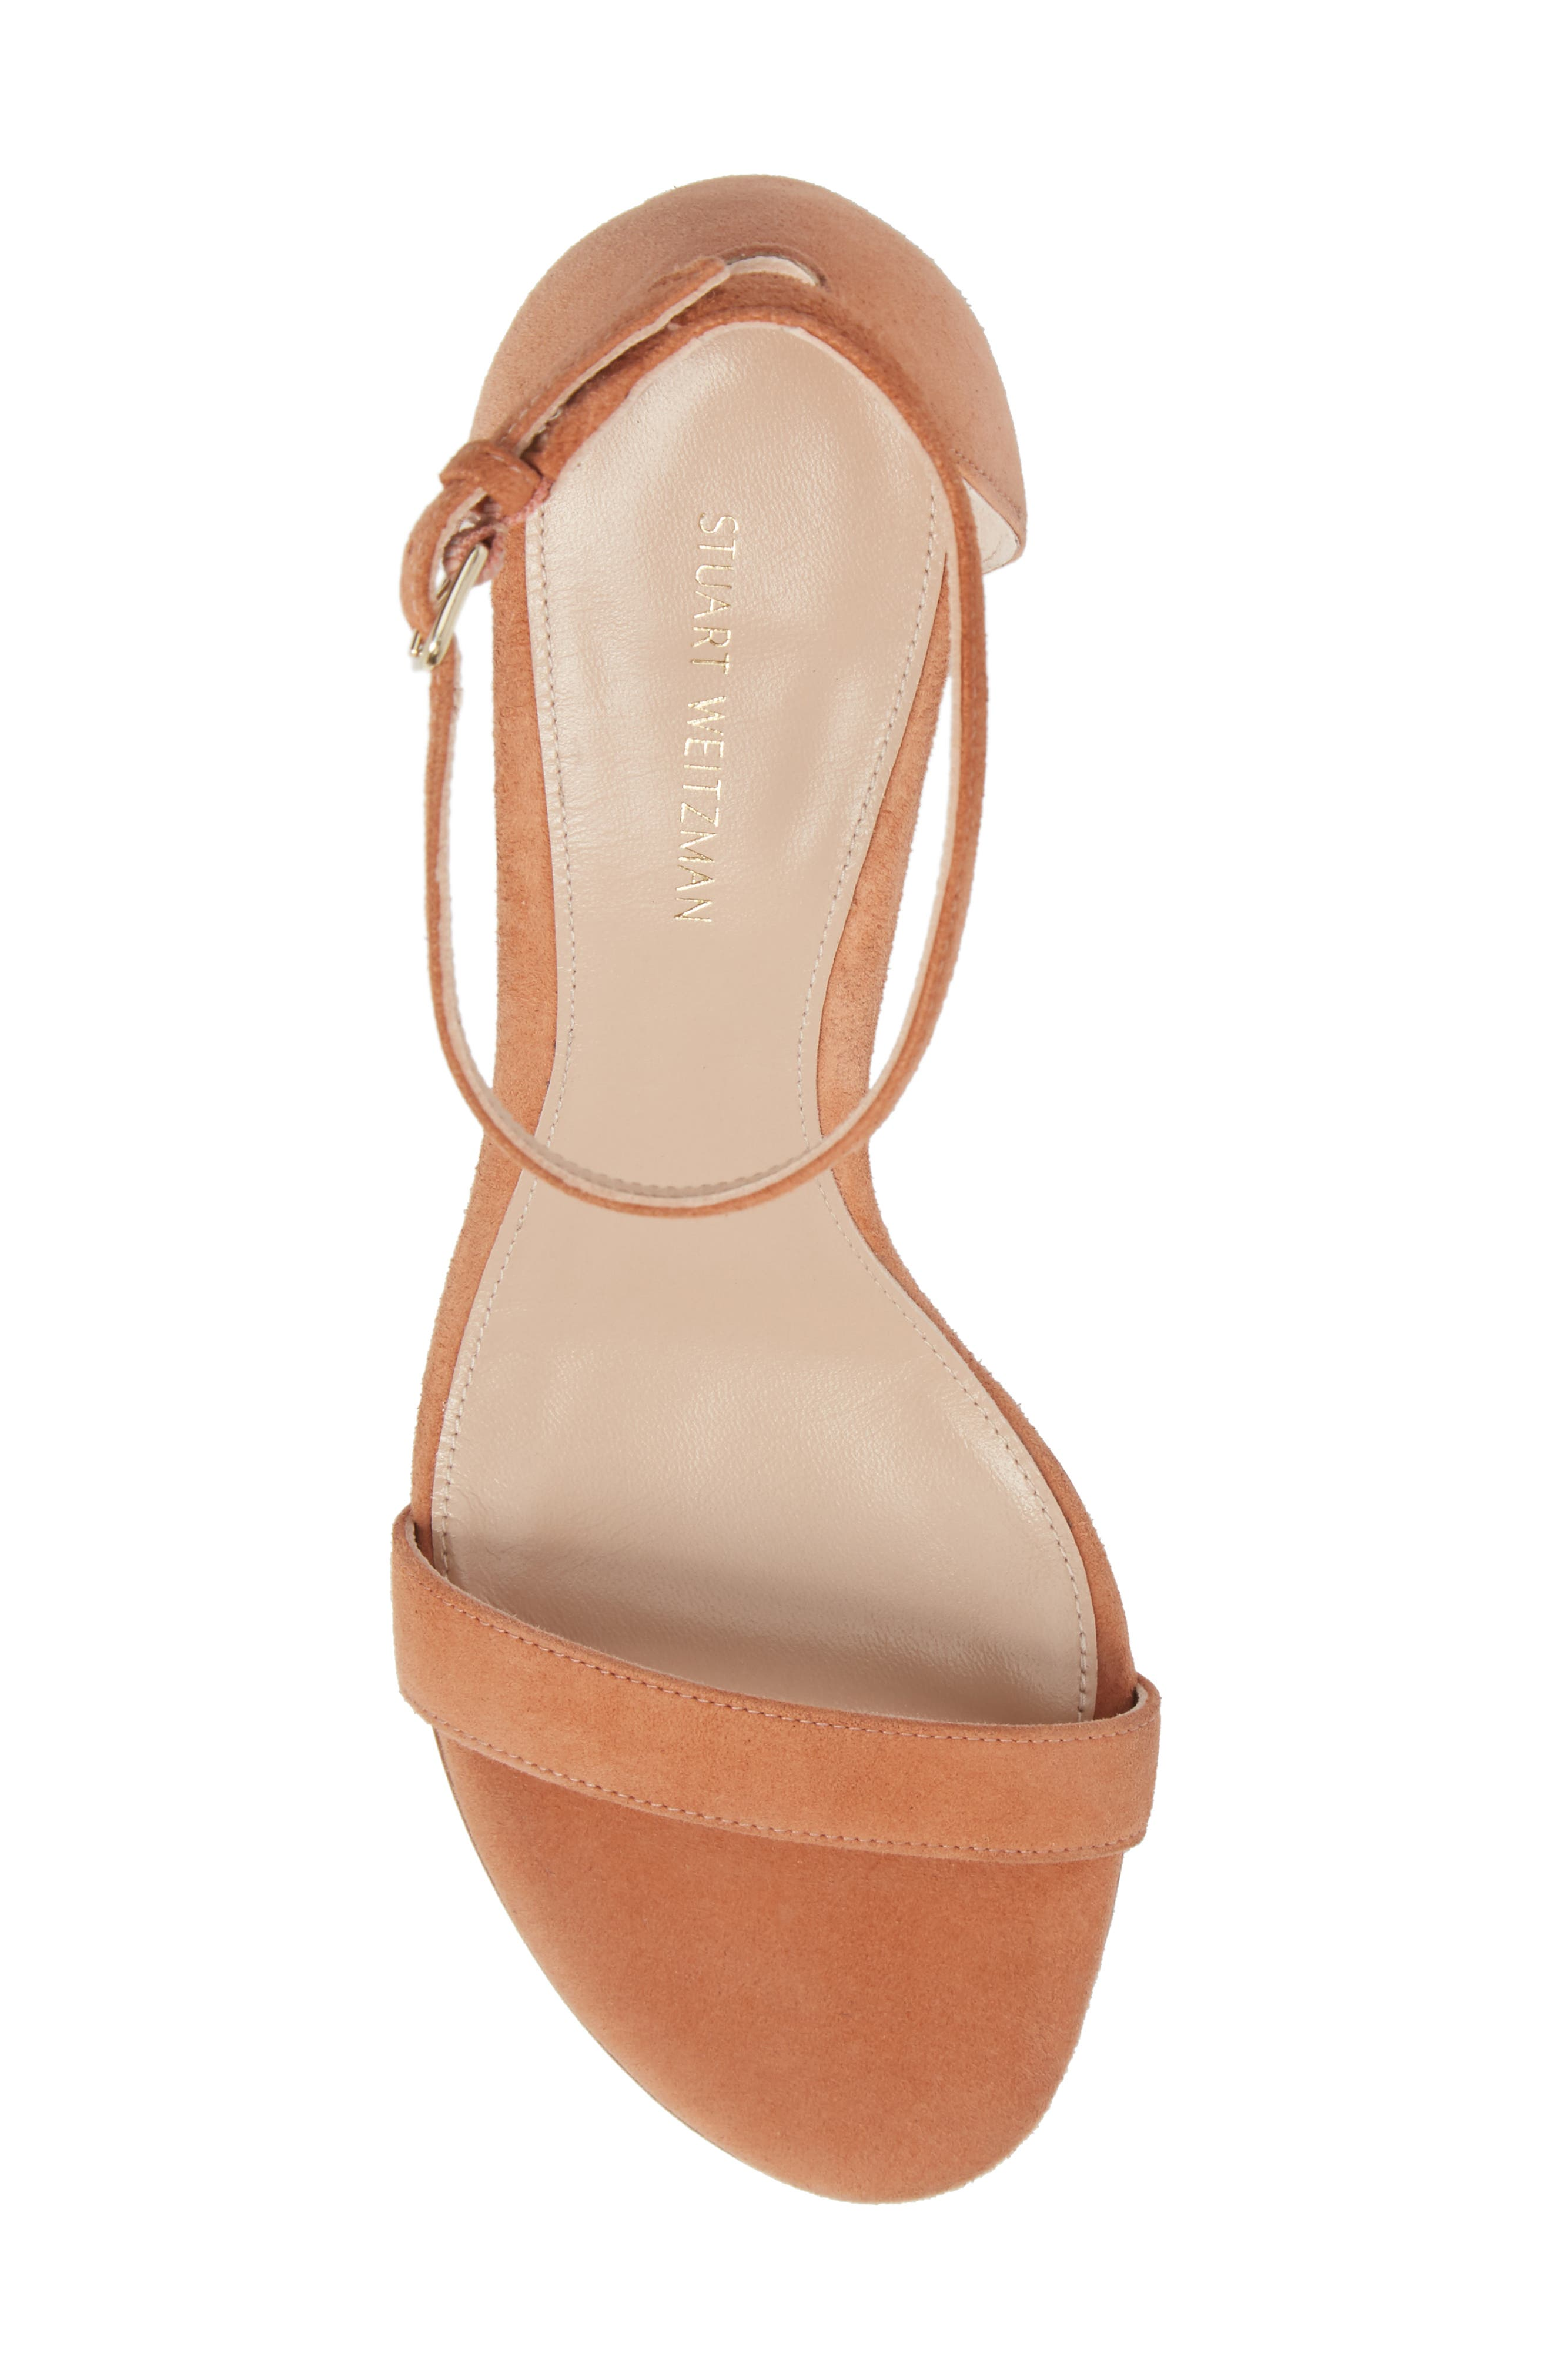 NearlyNude Ankle Strap Sandal,                             Alternate thumbnail 112, color,